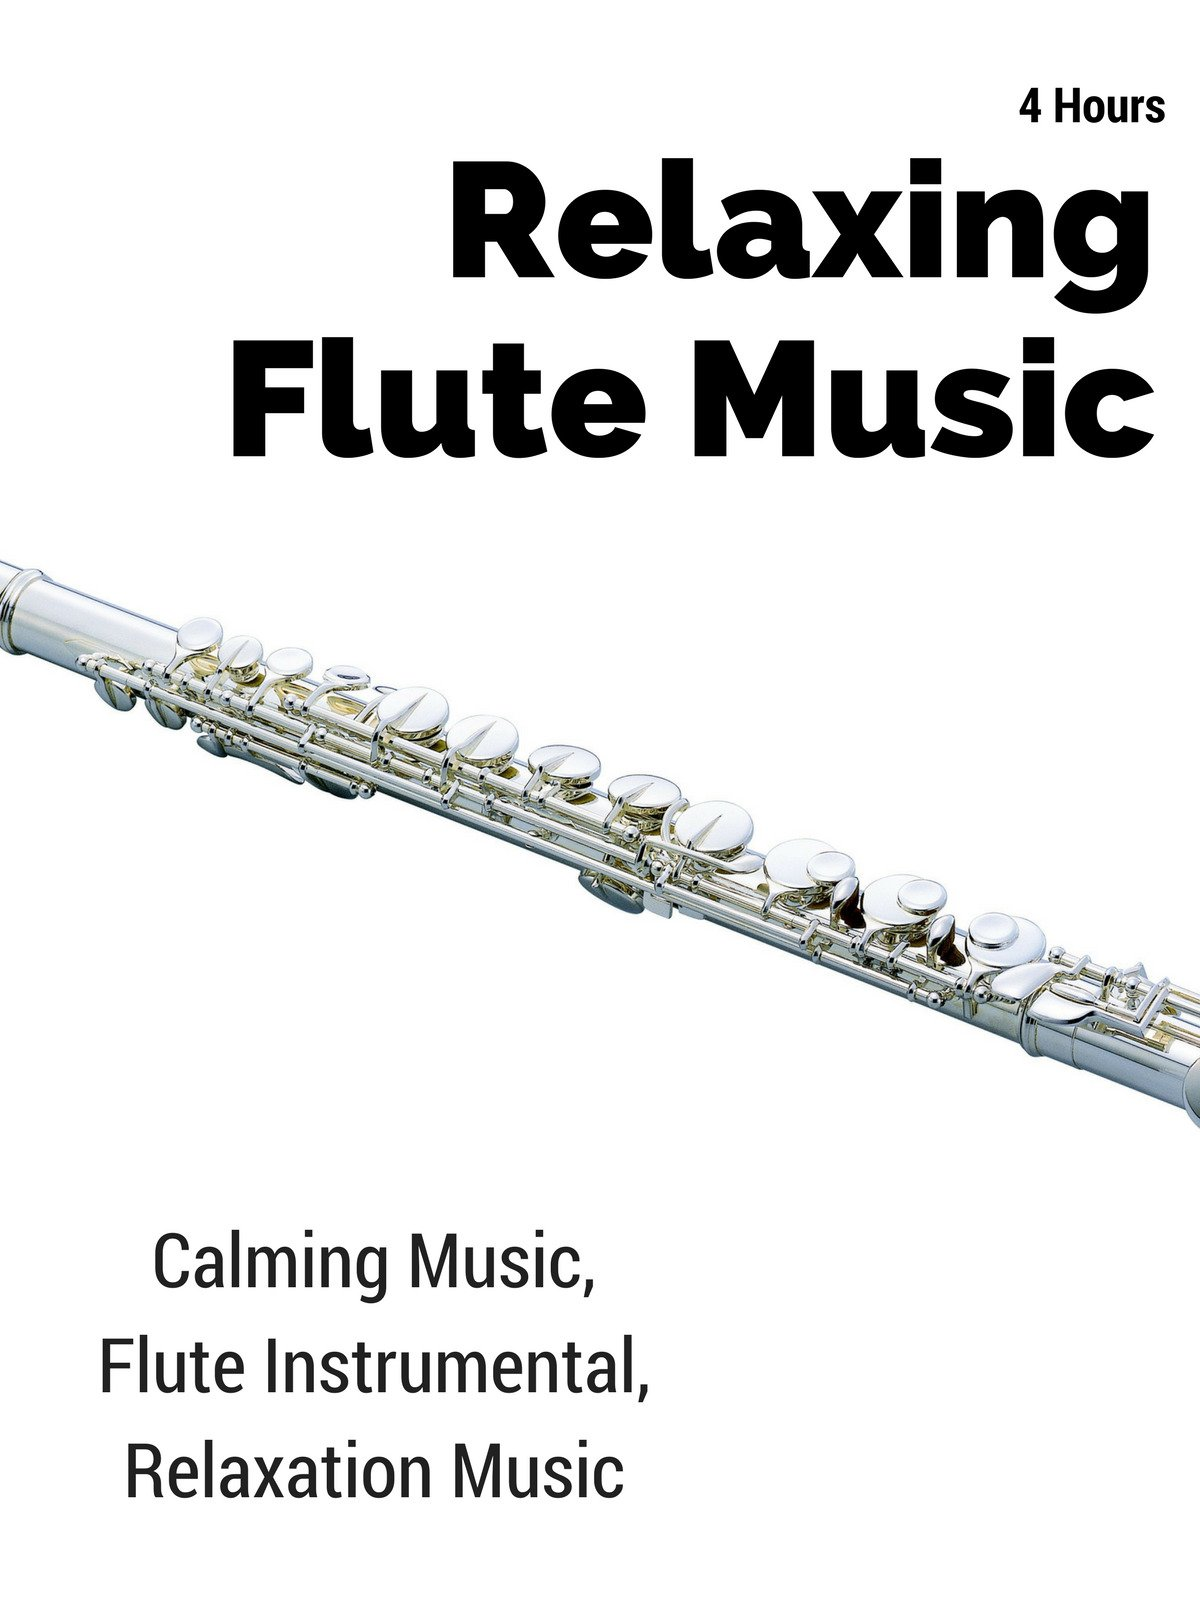 4 Hours Relaxing Flute Music